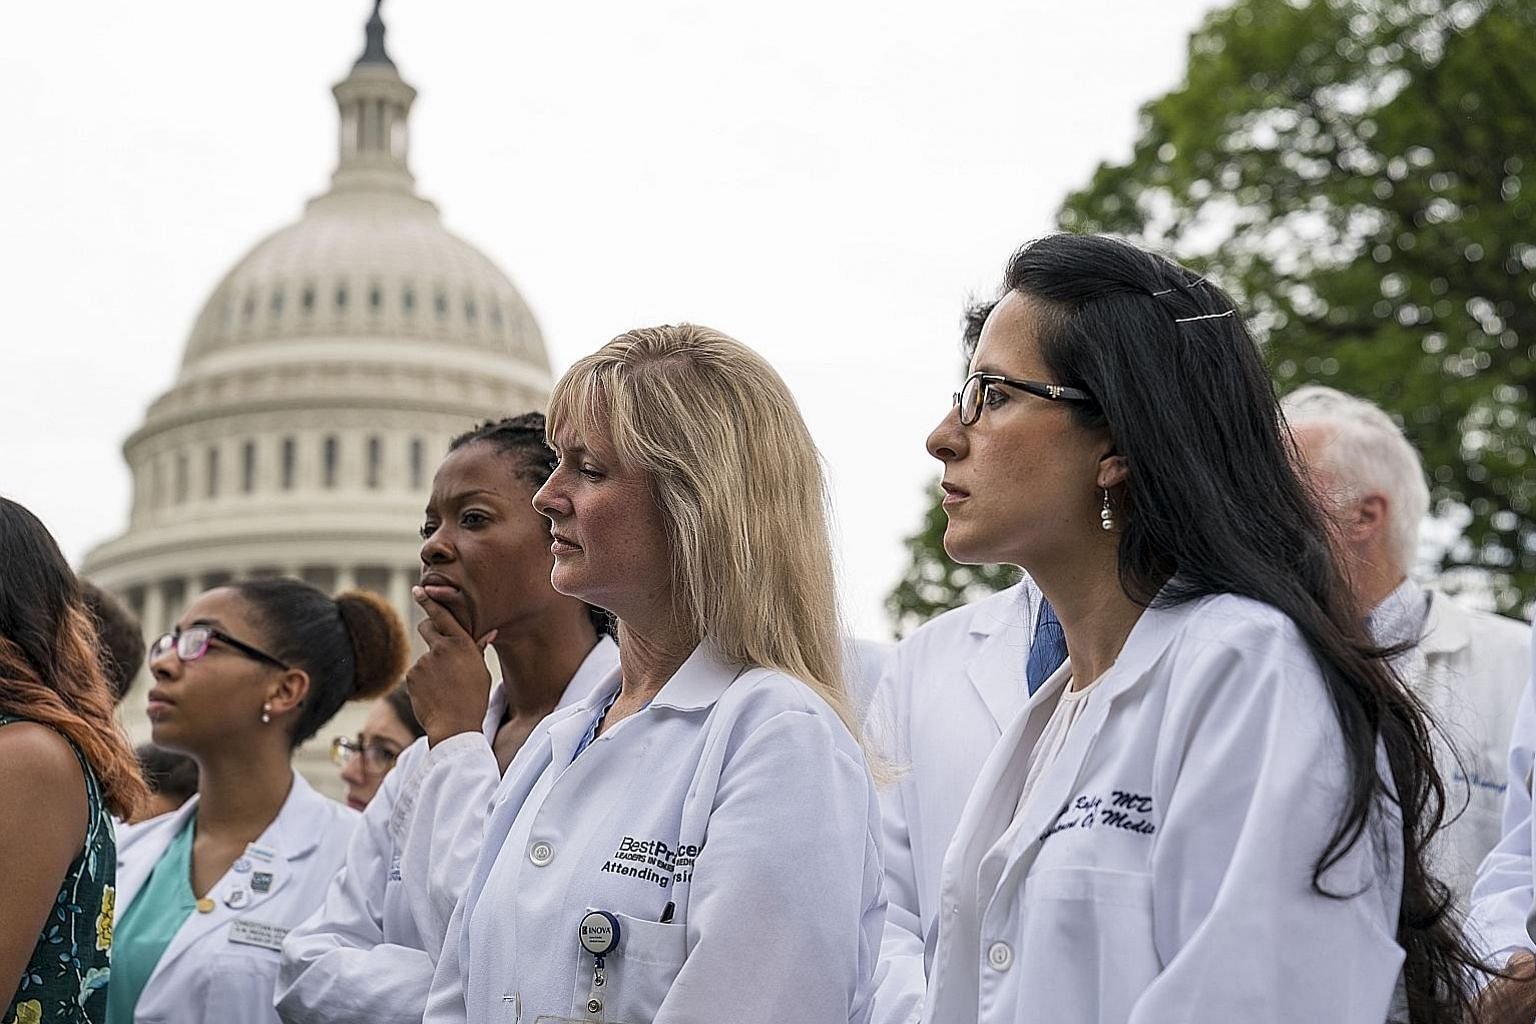 """Healthcare workers protesting outside the Capitol on Thursday. Democrats have called the new health plan a """"war on Medicaid""""."""